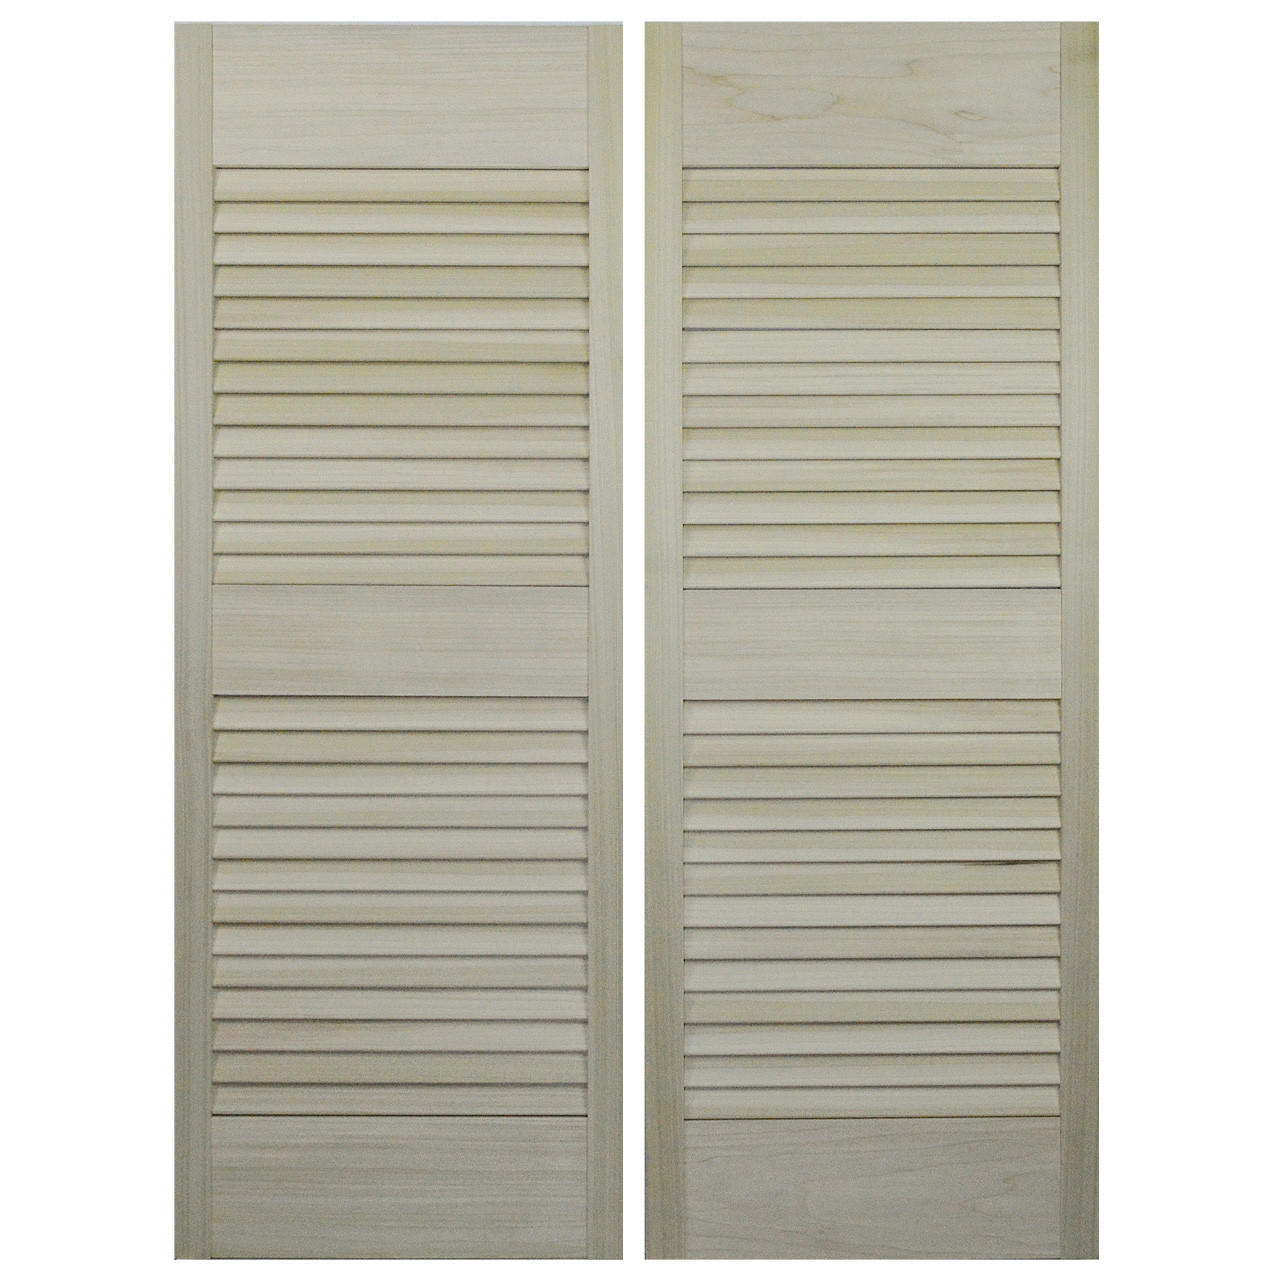 Custom hardwood louvered saloon doors cafe doors to fit for 18 inch louvered door